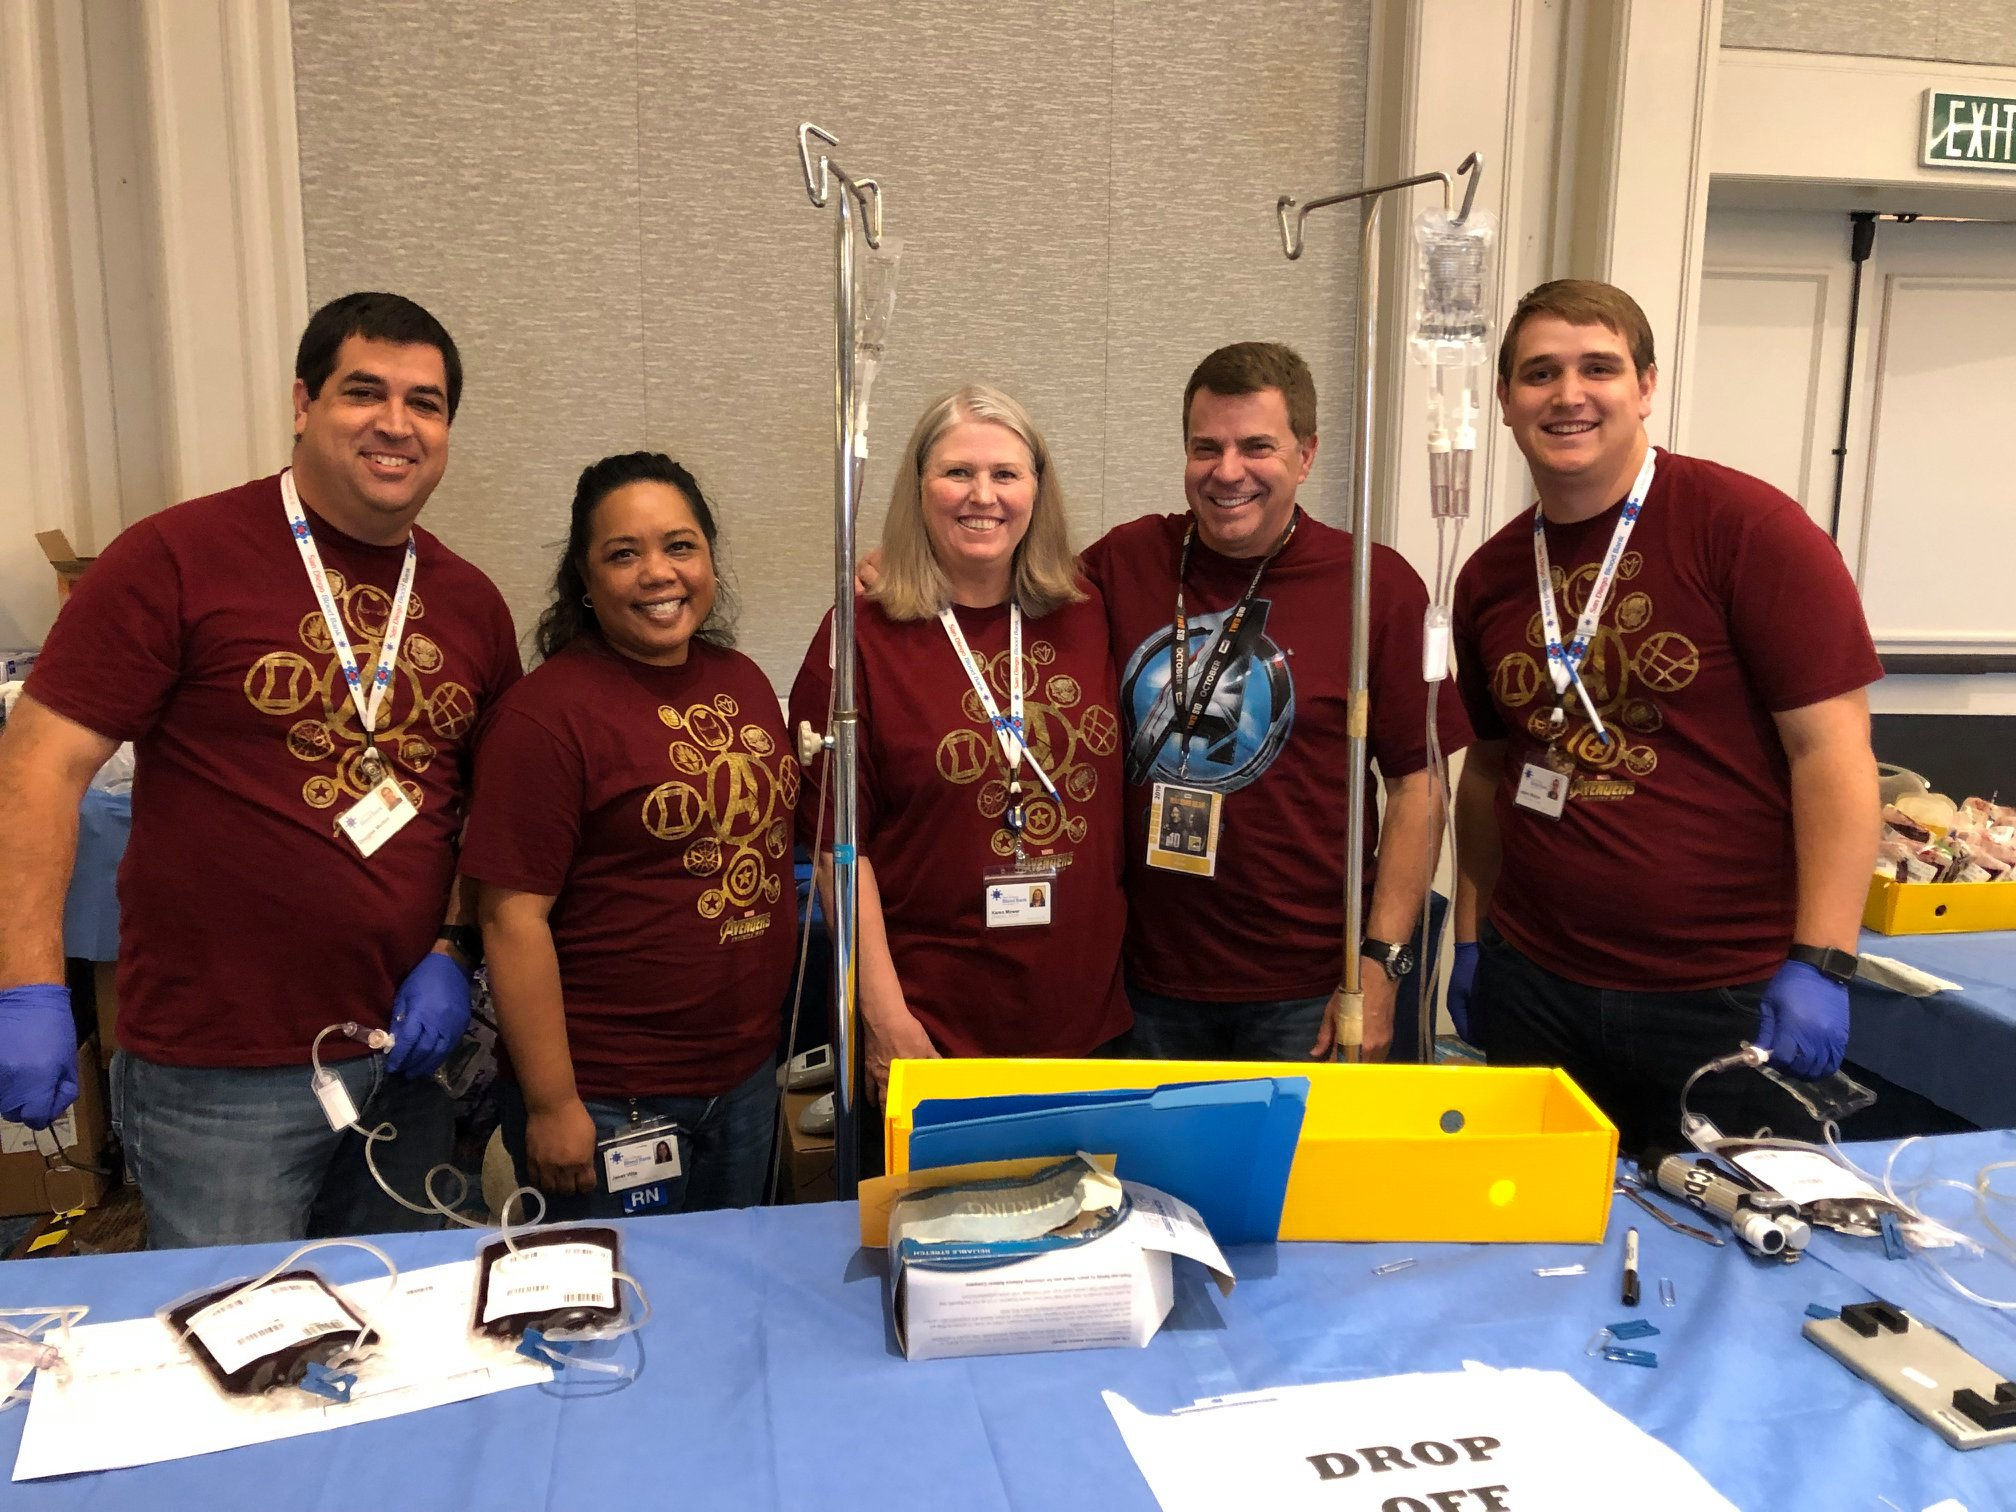 Doug Morton, COO; Janet Villa, Director of Research and NCW; Karen Mower, Director NCW; David Wellis, CEO and Jason Morton, IT Administrator volunteered time away from SDBB's Headquarters to help process 3,343 blood components at the 43rd Robert A. Heinlein Blood Drive at Comic Con during #SDCC19.